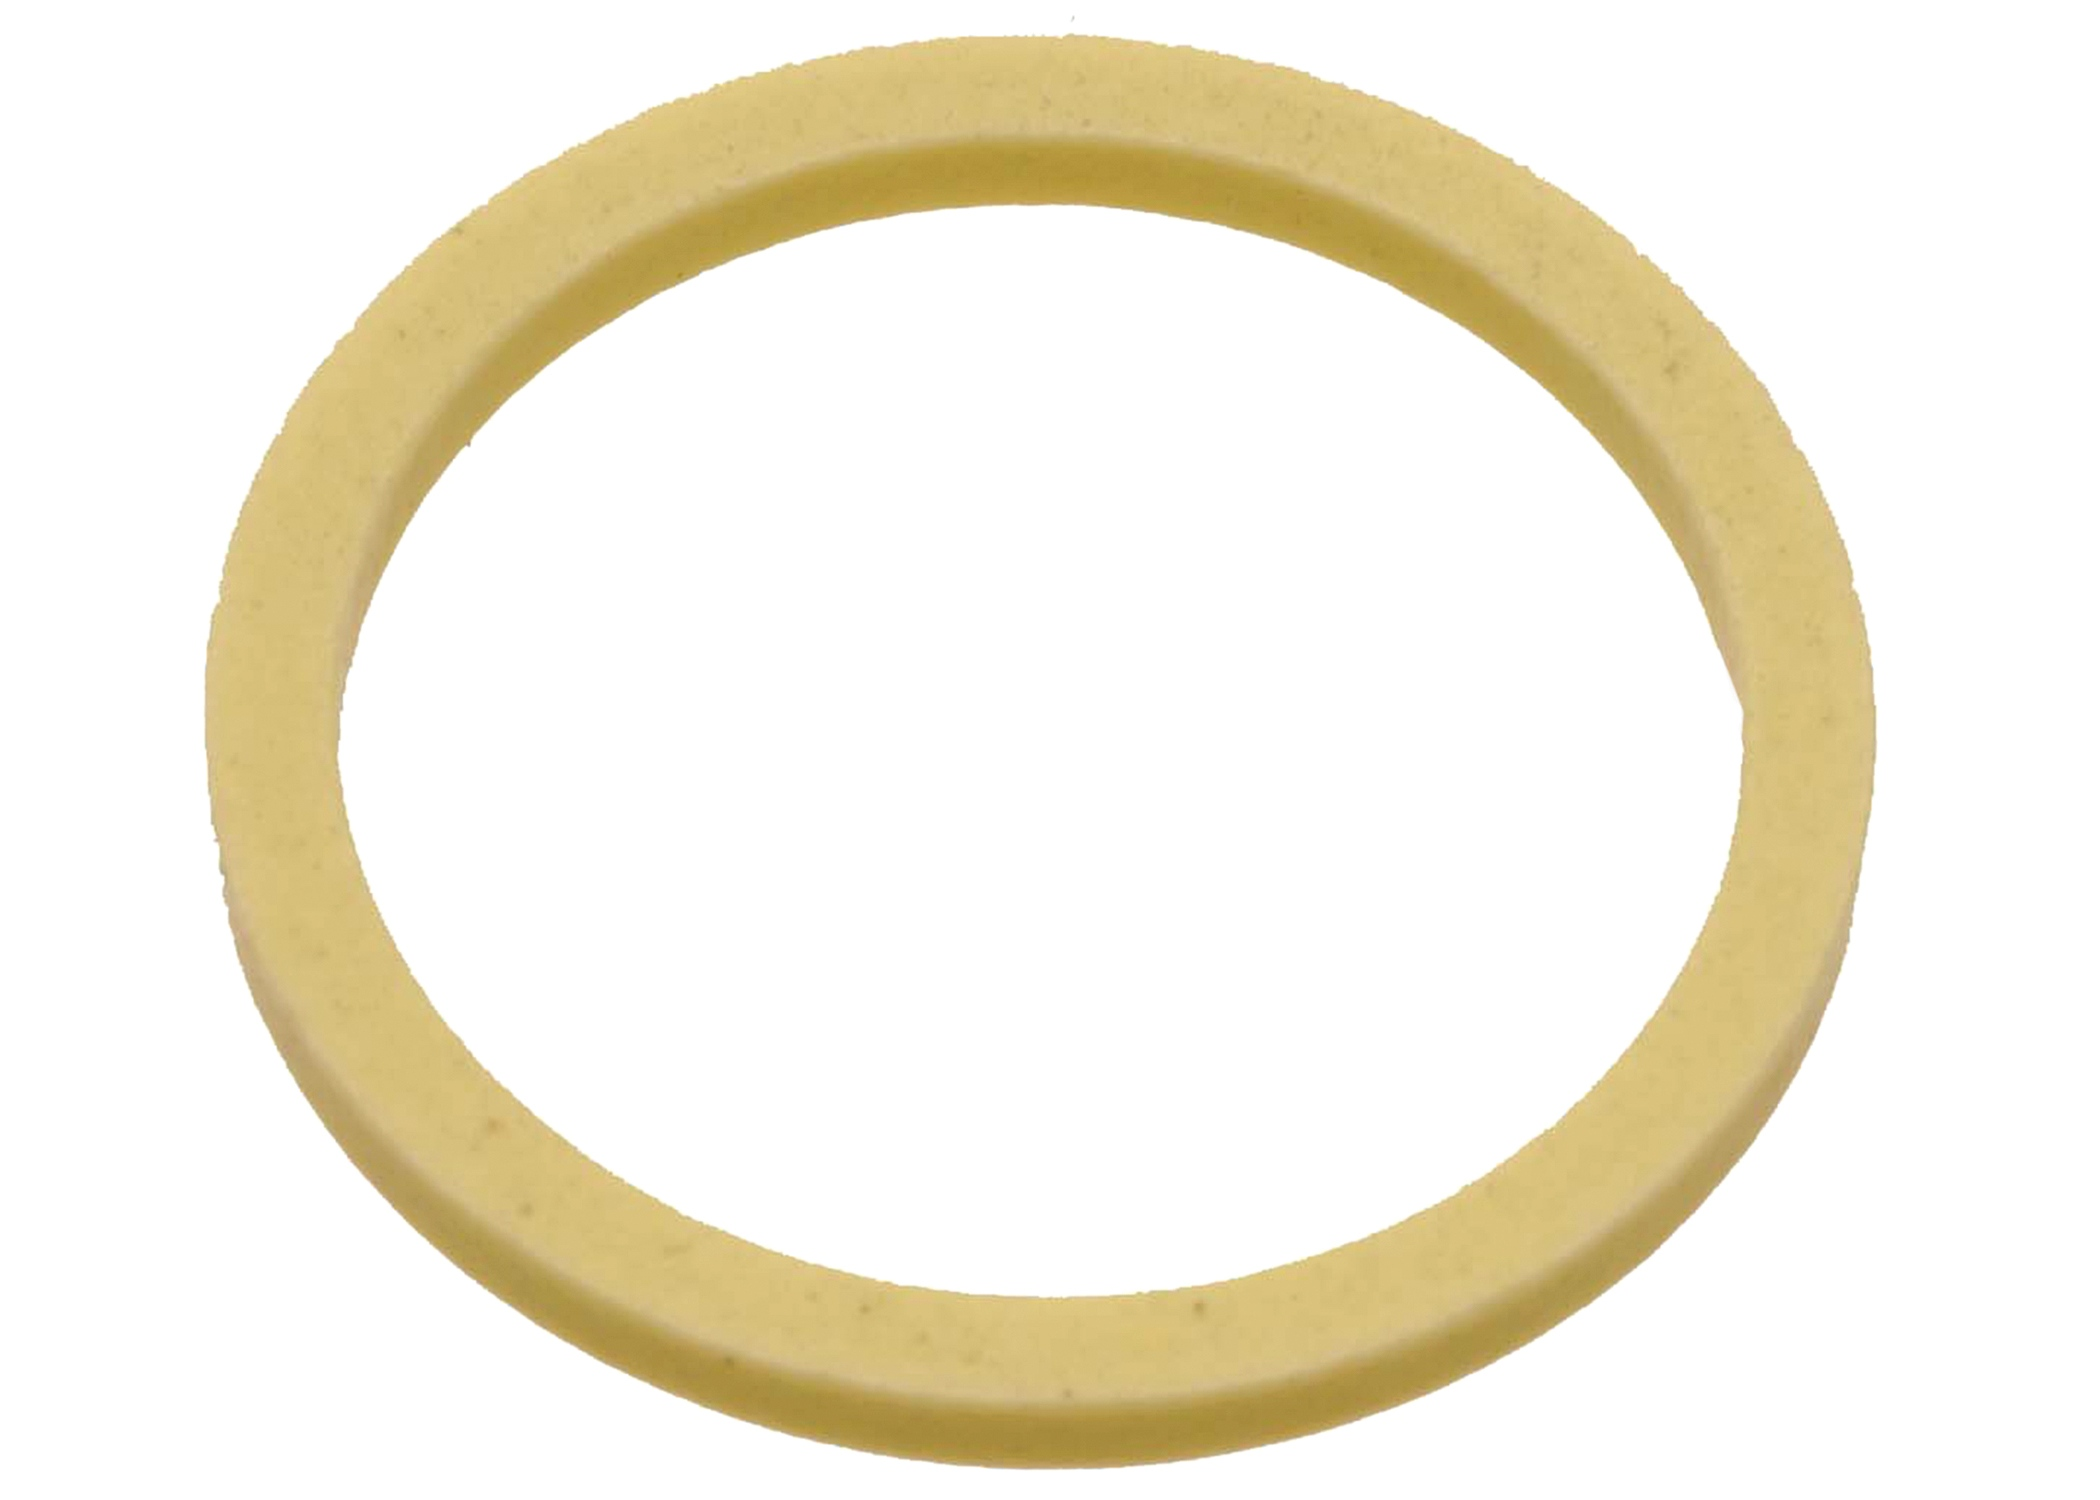 ACDELCO OE SERVICE - Turbine Shaft Fluid Seal Ring - DCB 24208978